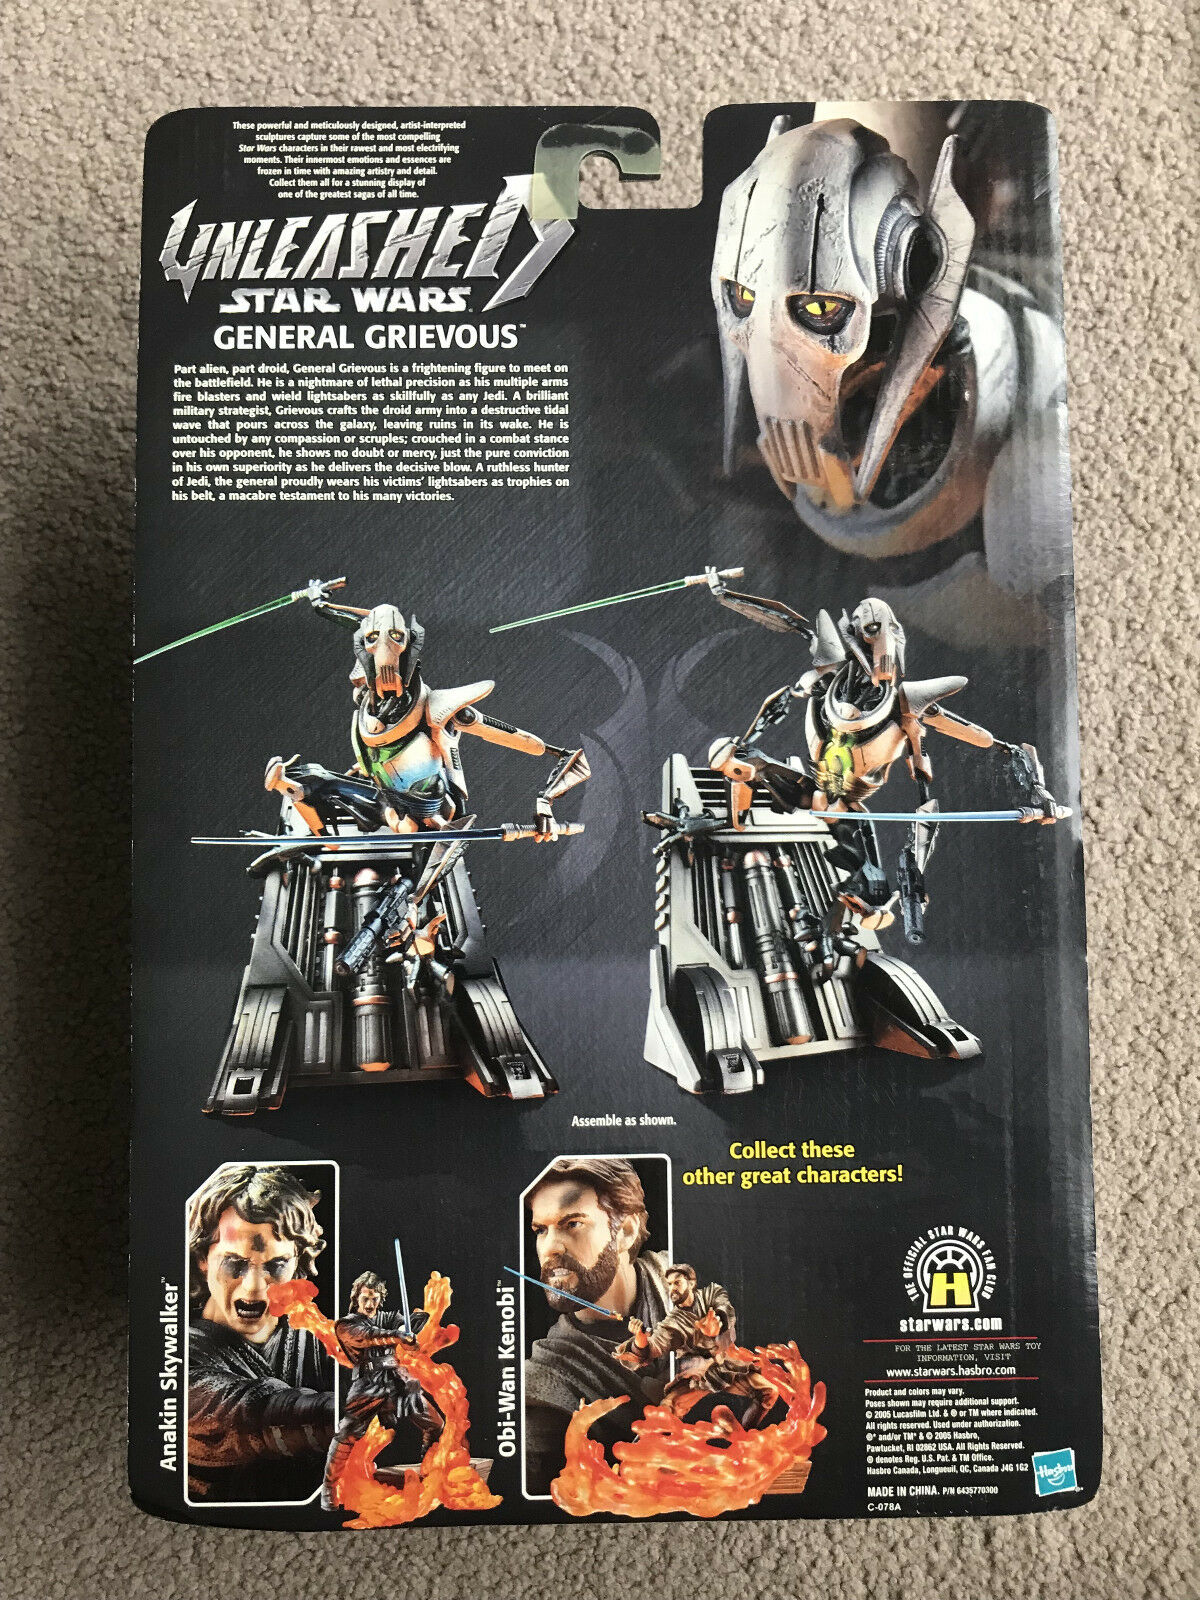 Star Wars Unleashed GENERAL GRIEVOUS Action Figure Episode III - - - New in box fd8299